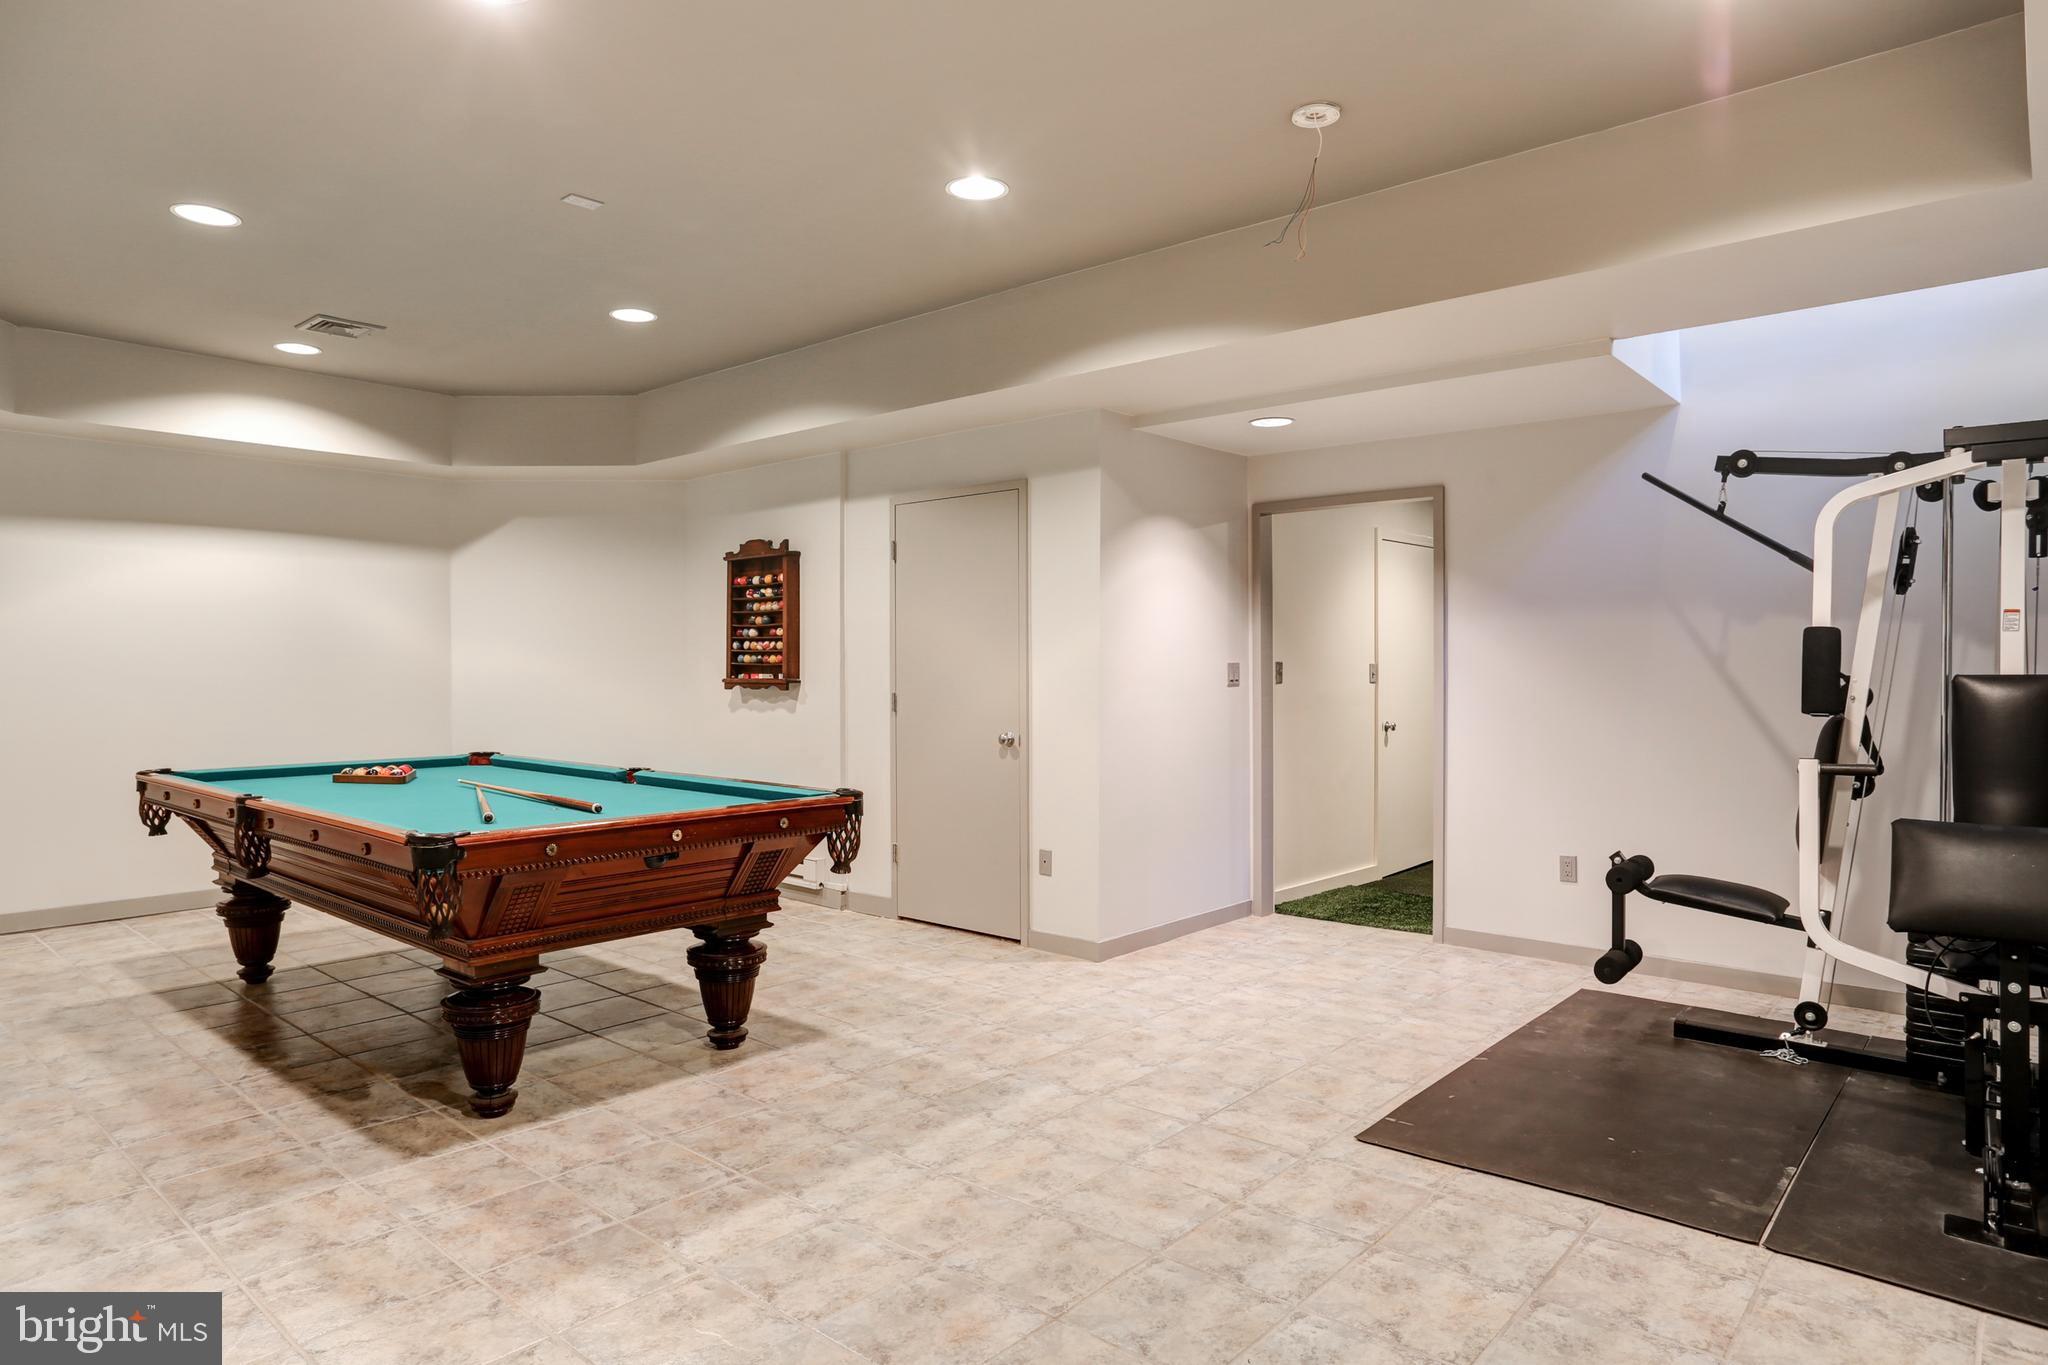 Shoot a game of pool, do some strength training...